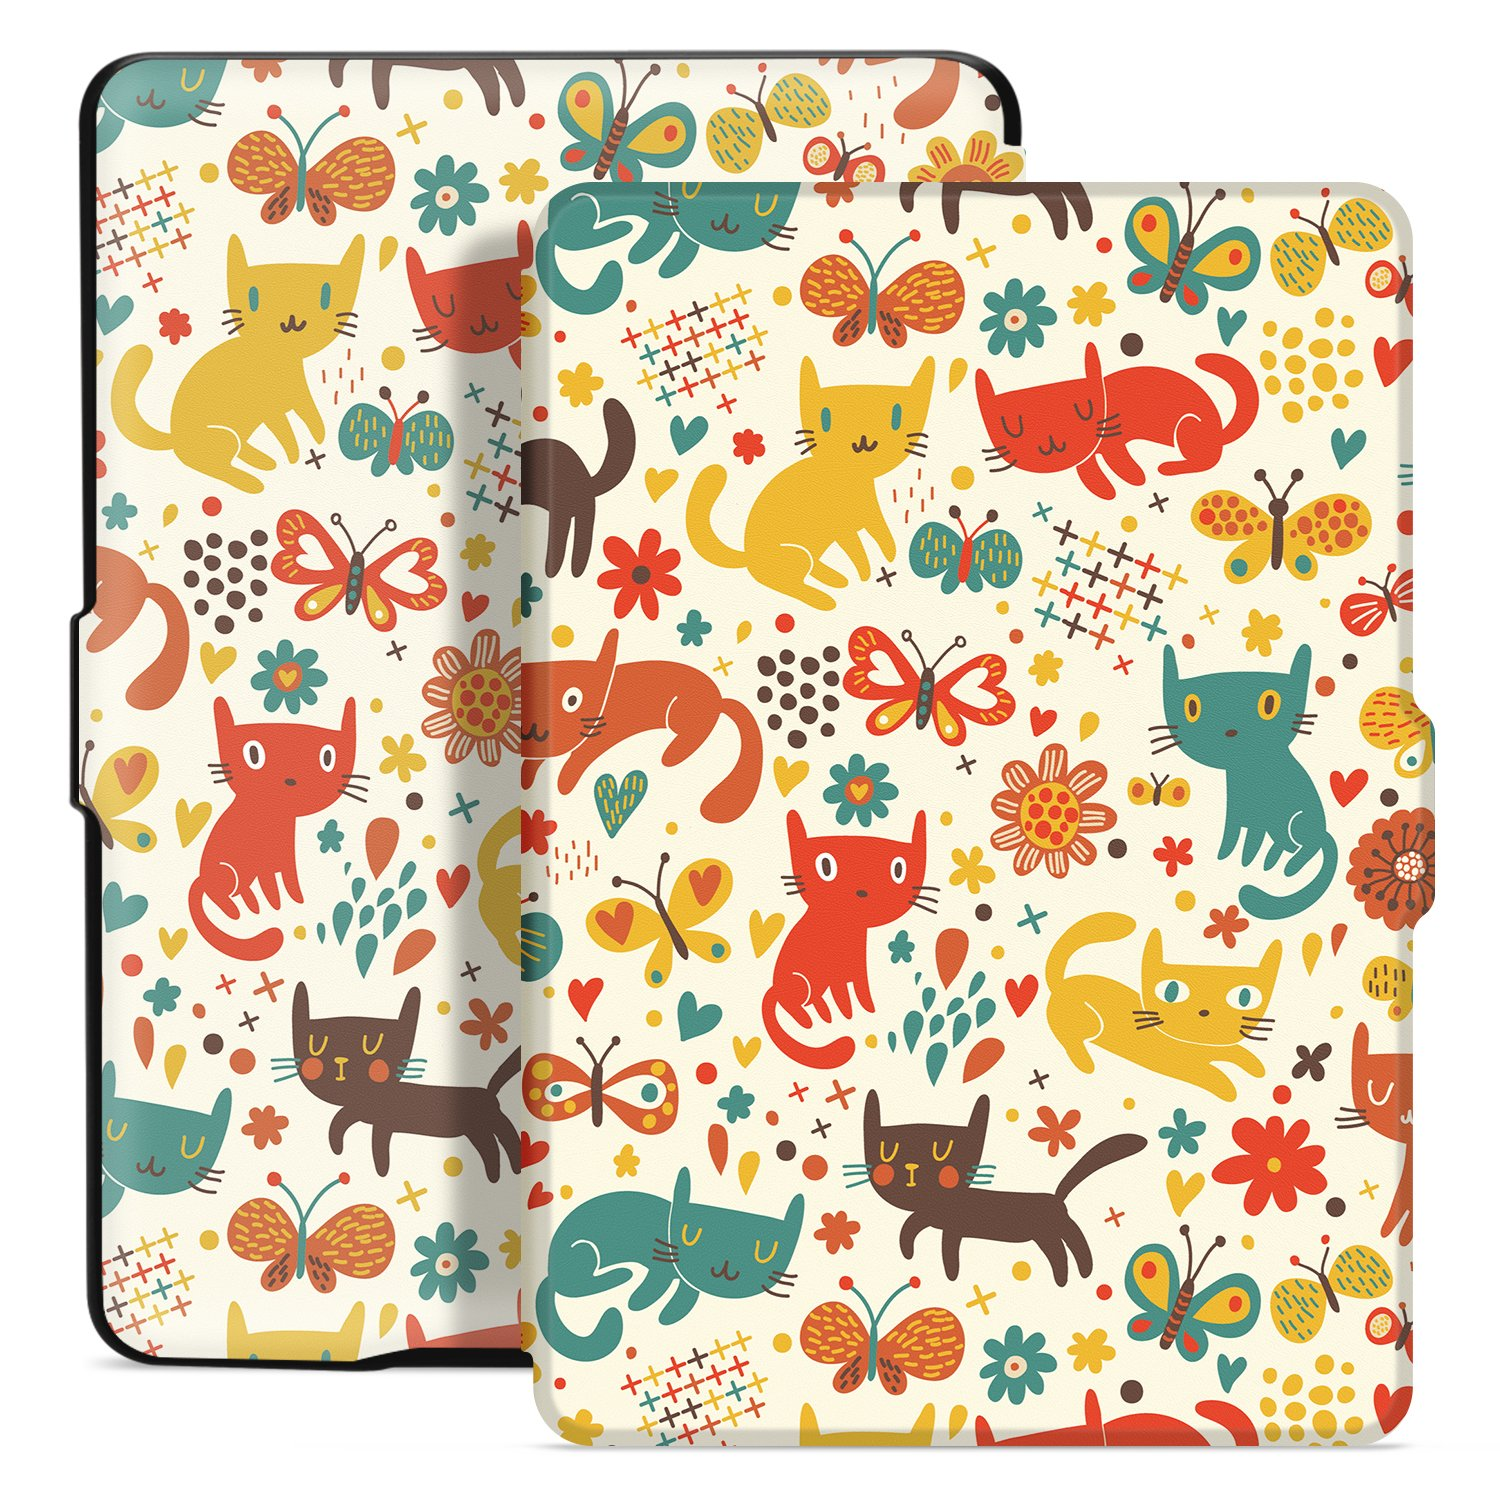 Ayotu Colorful Case for Kindle Paperwhite Auto Wake/Sleep Smart Protective Cover Case - Fits All Paperwhite Generations Prior to 2018(Not Fit All-New Kindle Paperwhite 10th Gen) K5-04 The Cat